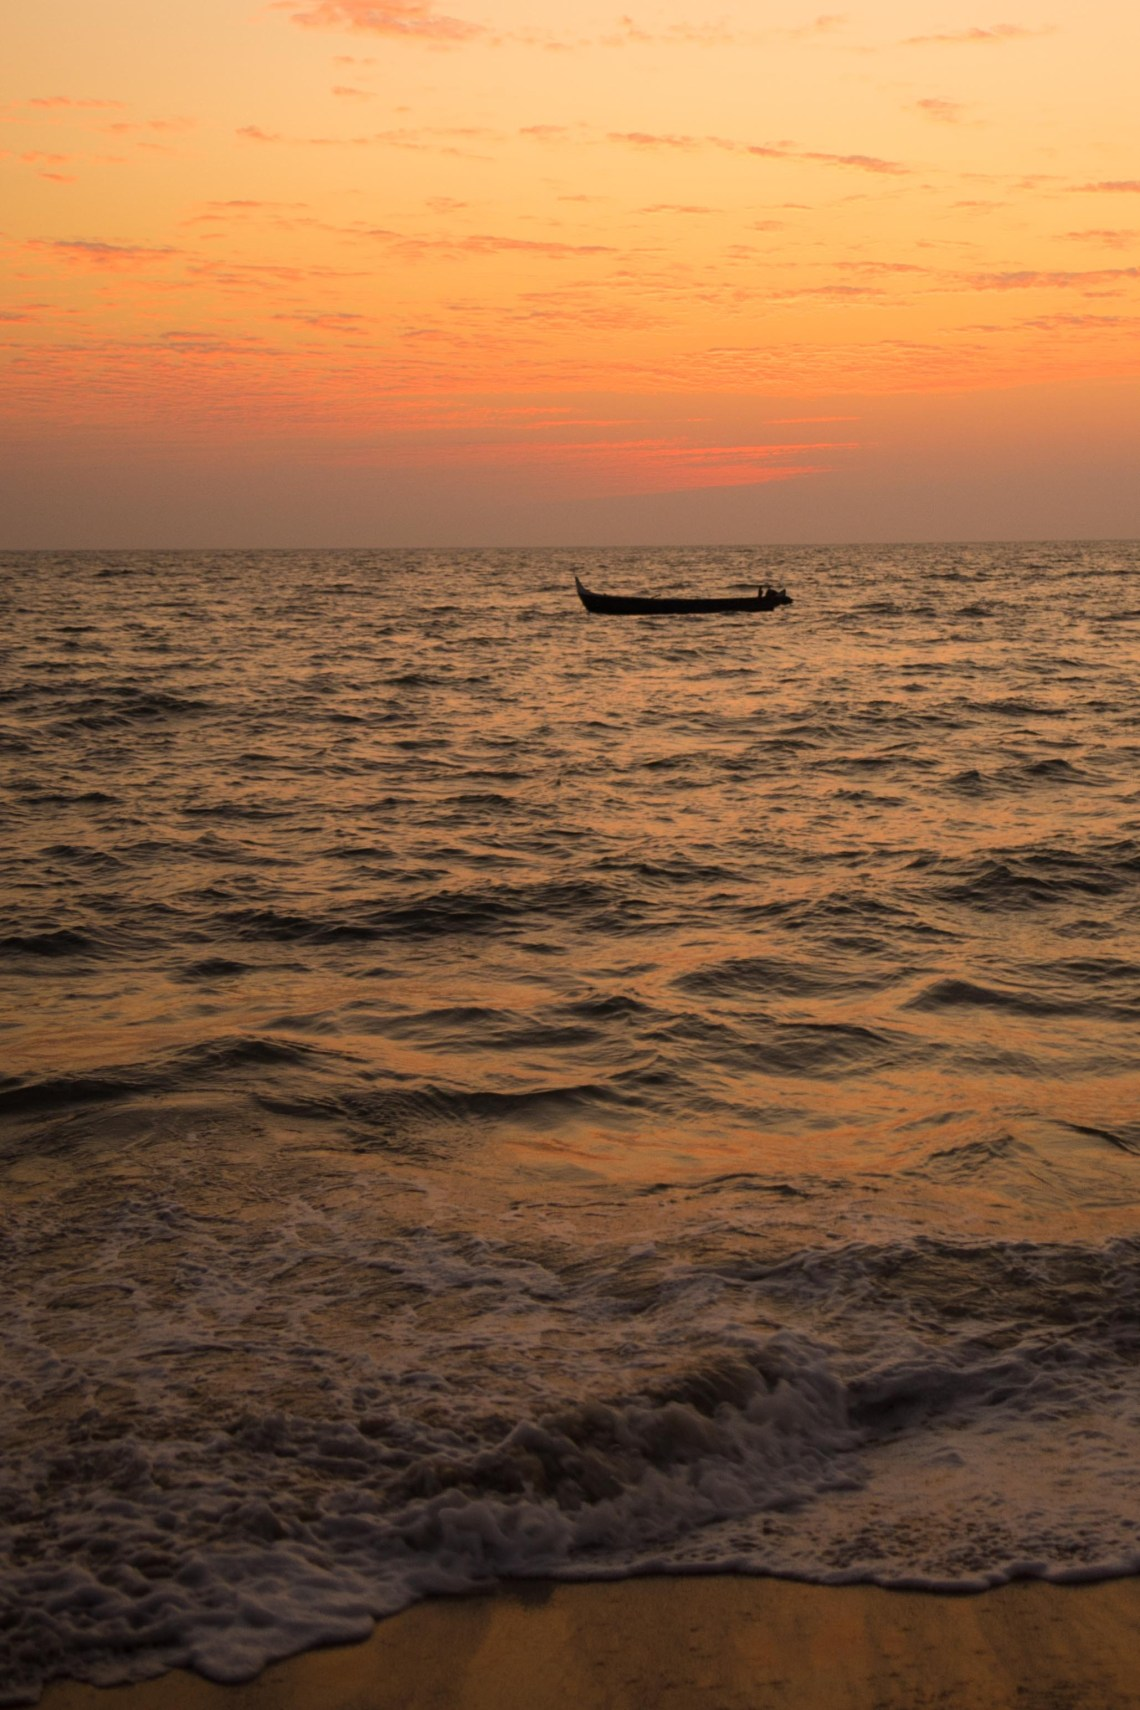 A boat floating in the orange tinted sea during sunset